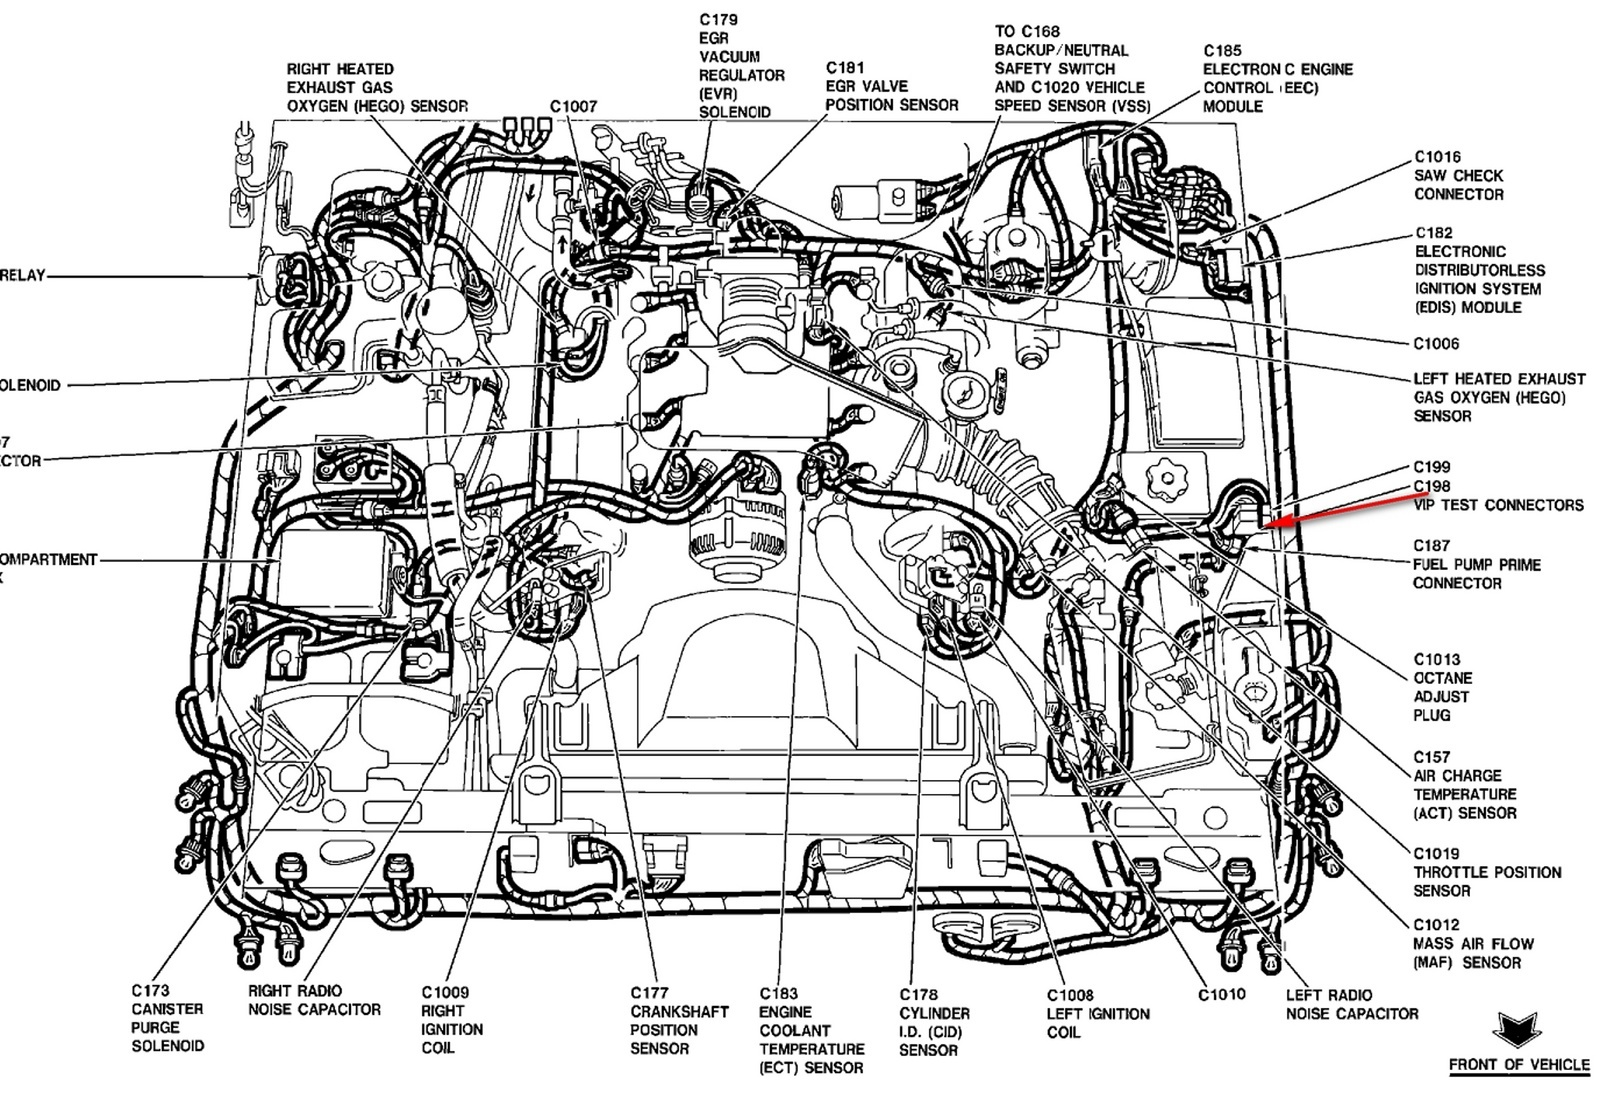 hight resolution of 1995 crown vic engine diagram wiring diagram new1995 crown vic engine diagram wiring diagram load 1995